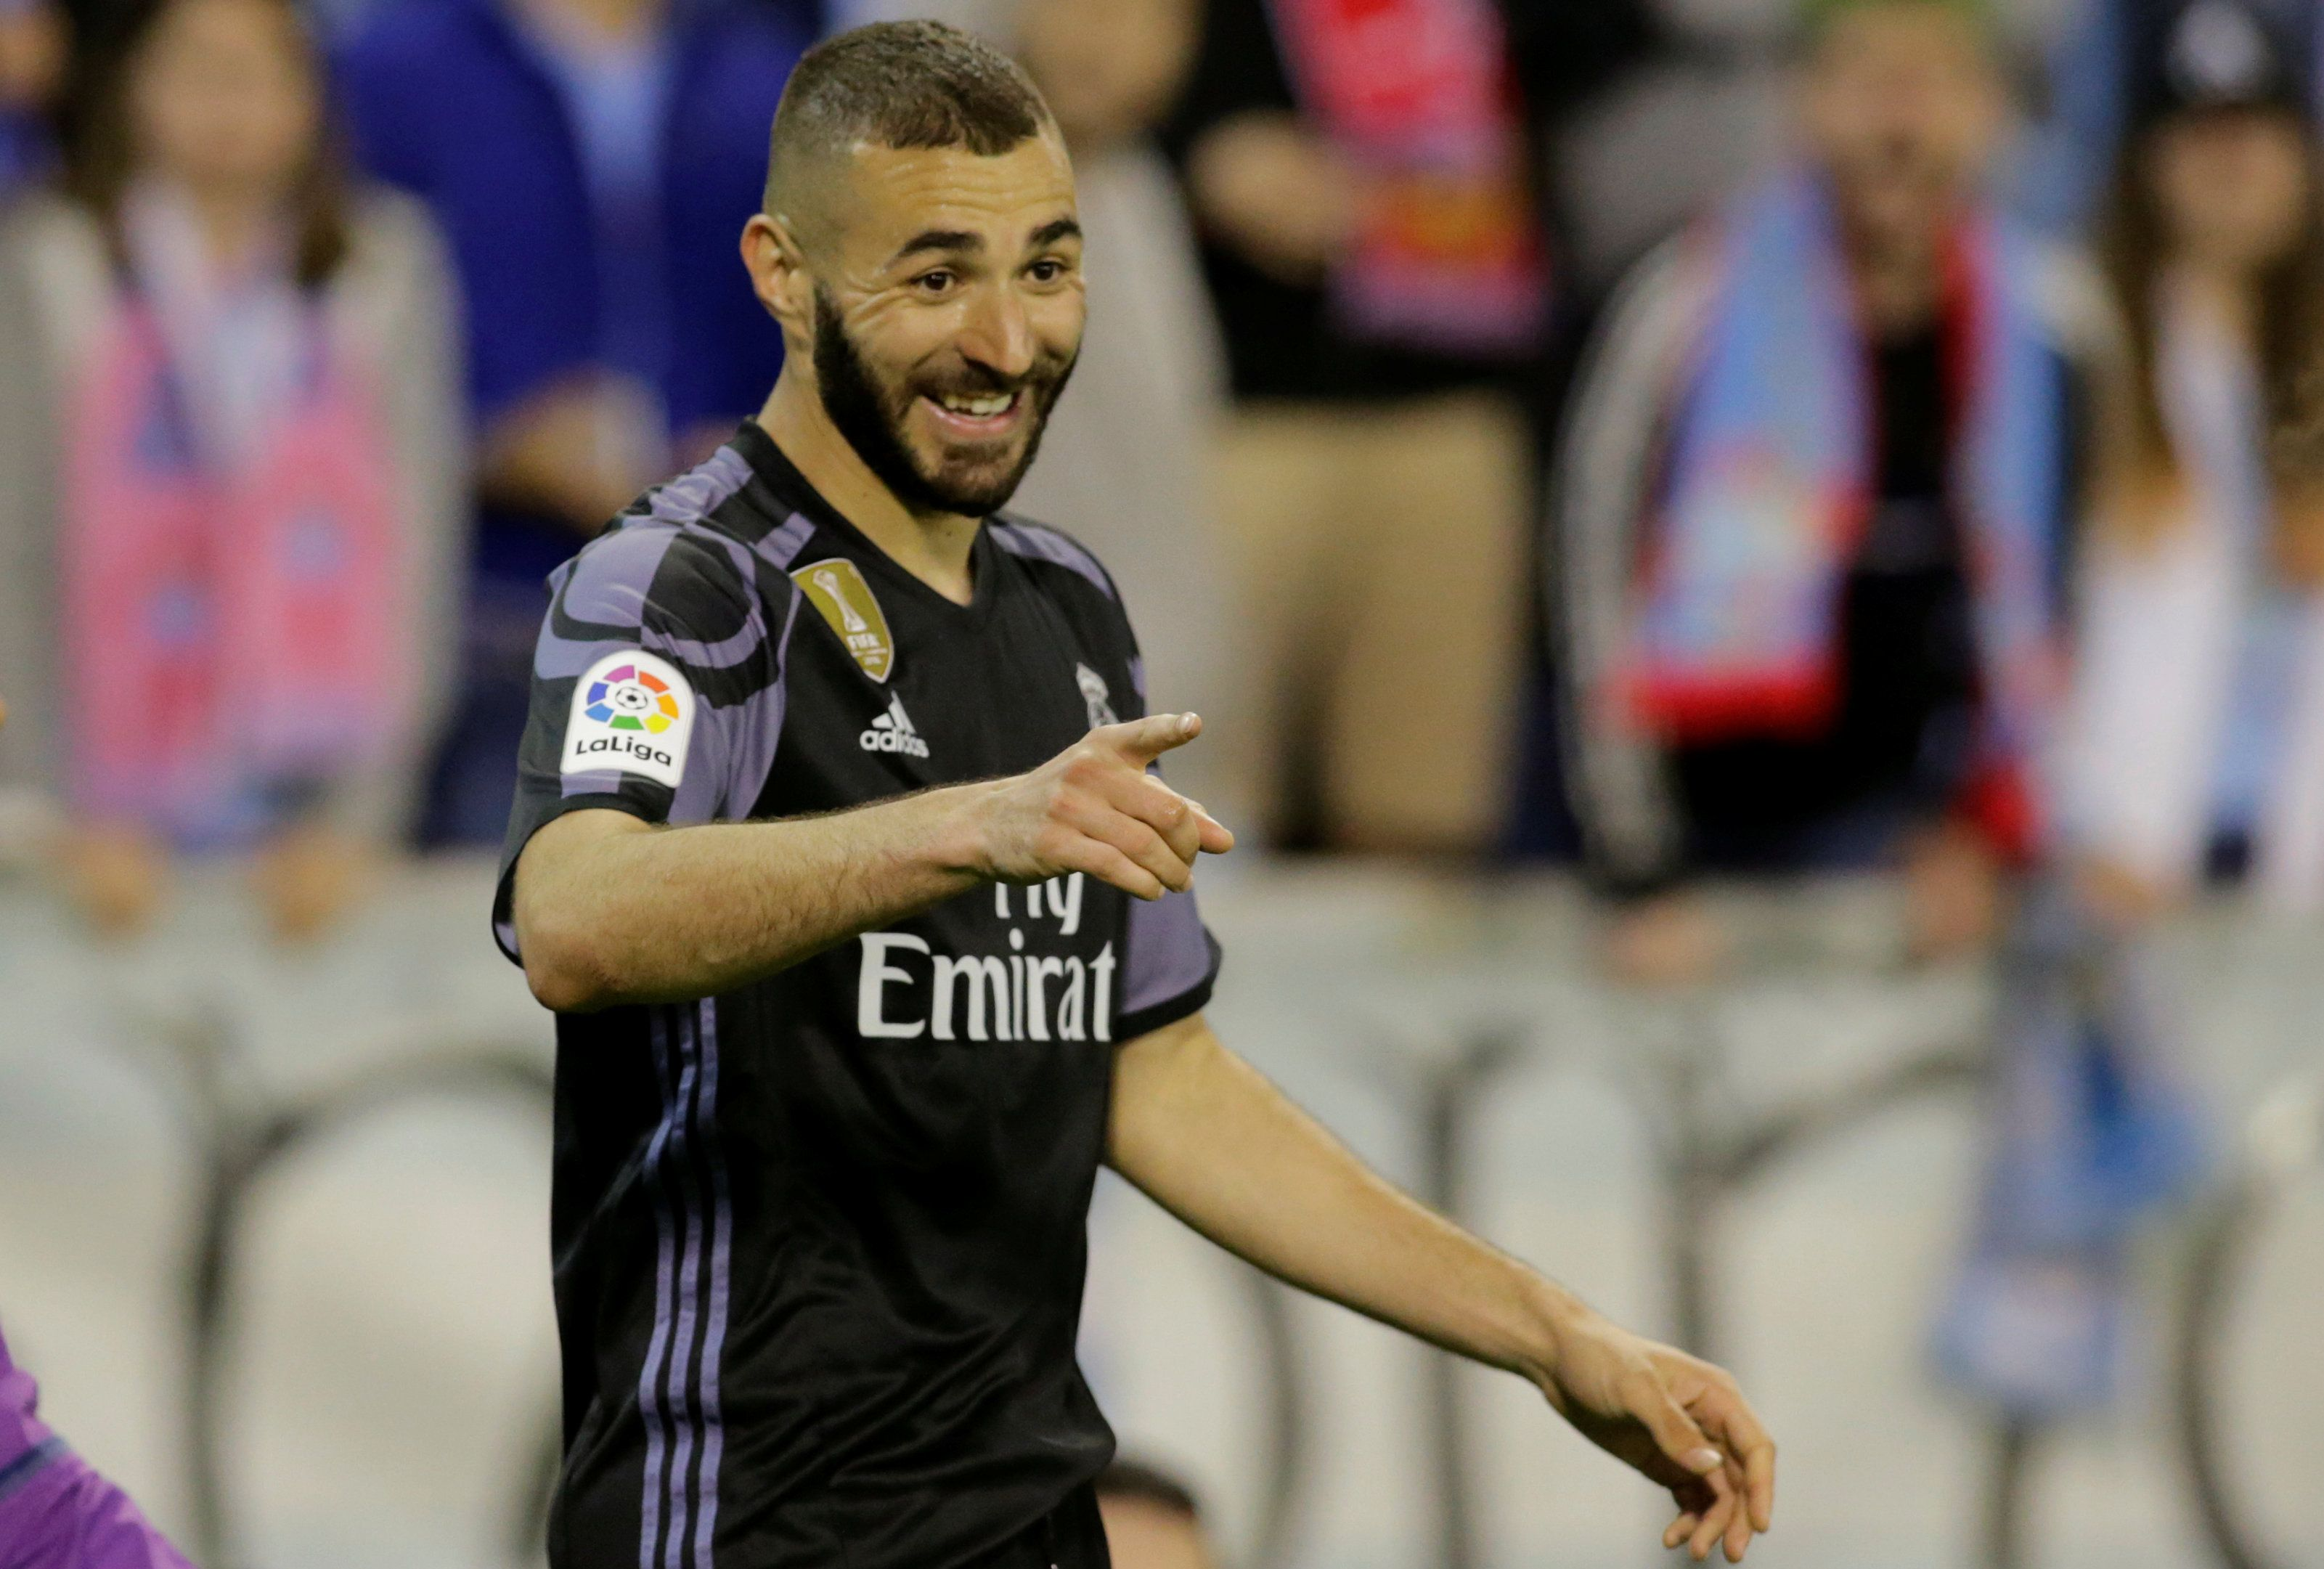 Football - Etranger - Benzema rempile au Real Madrid, l'histoire d'amour continue